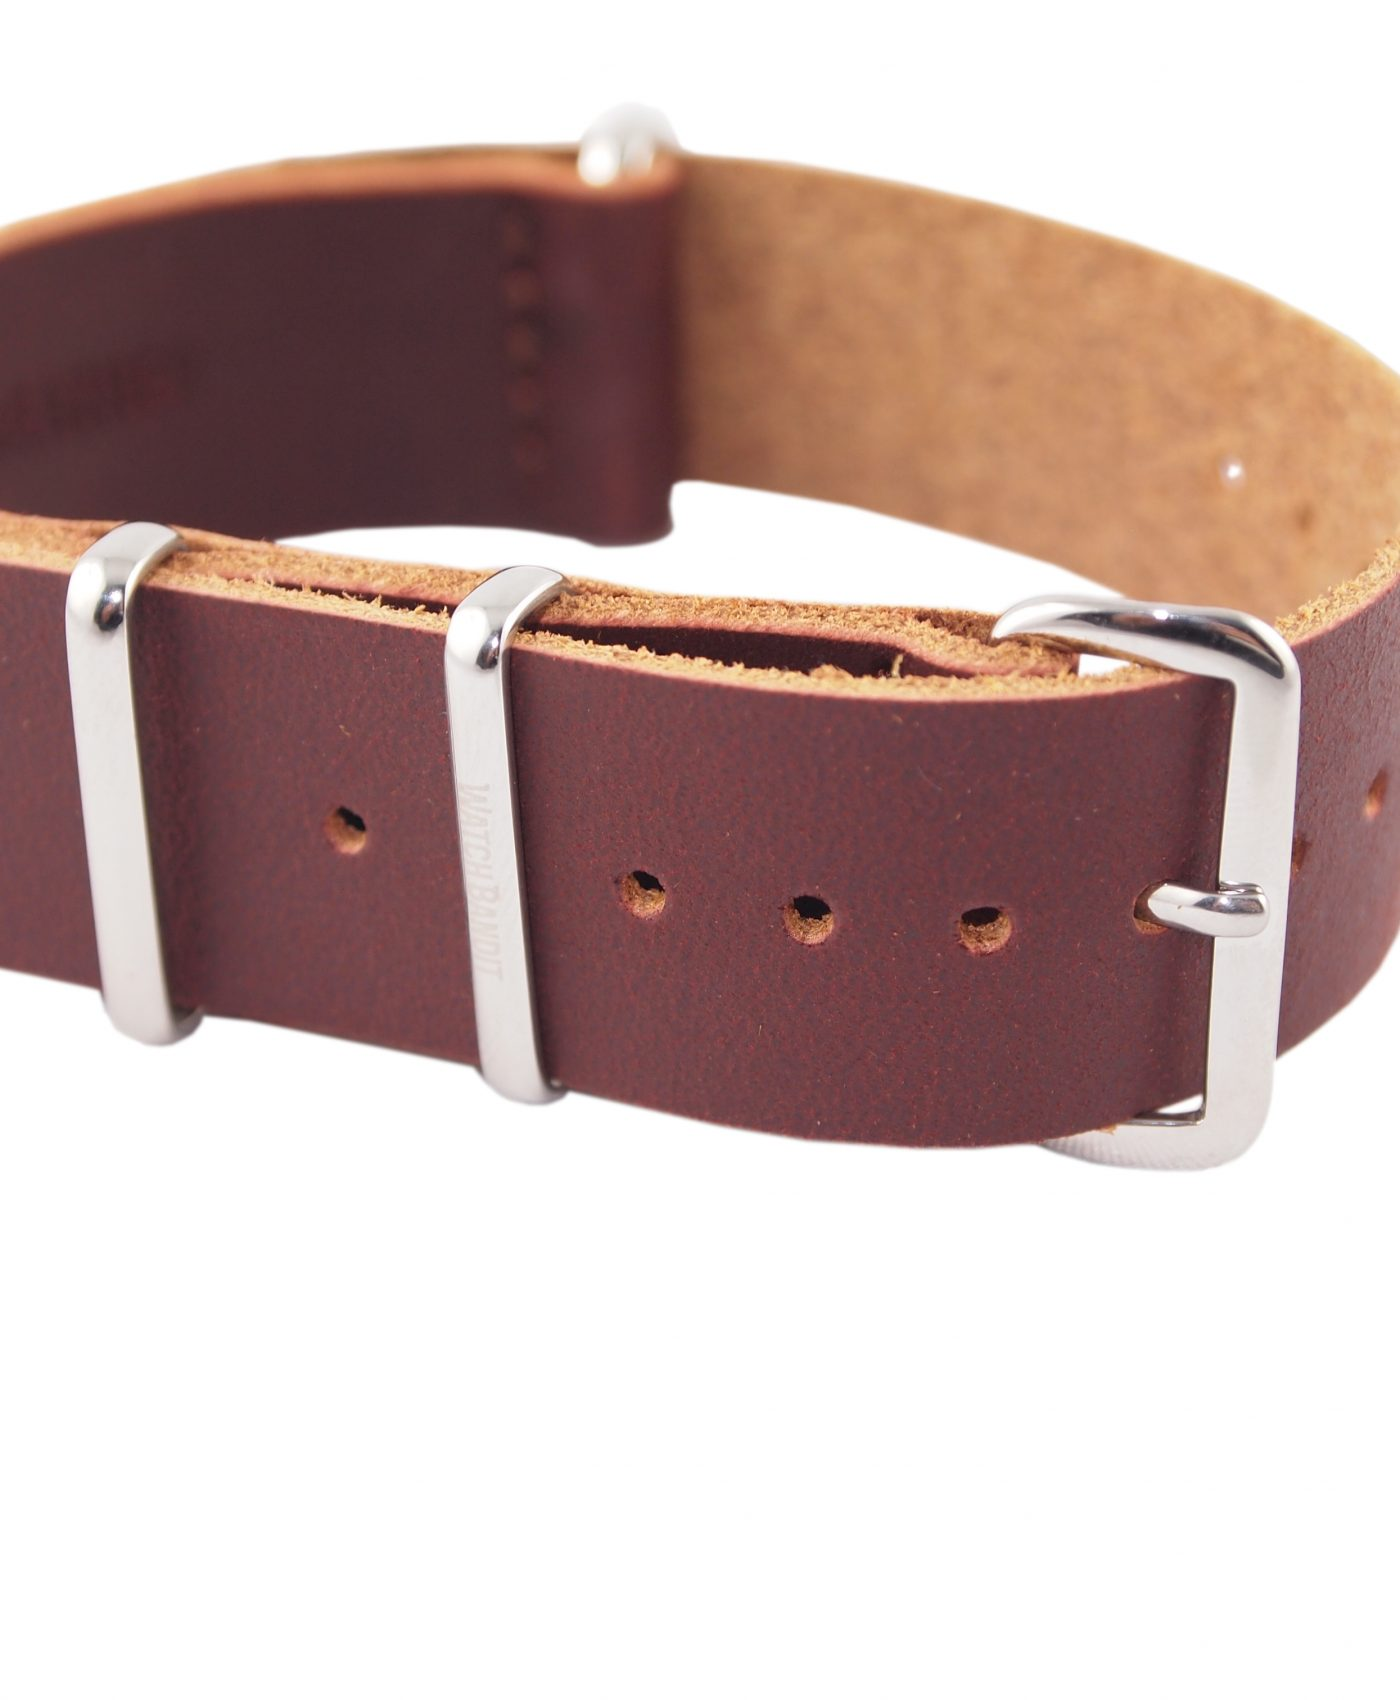 Nato Strap Burgundy Leather WatchBandit